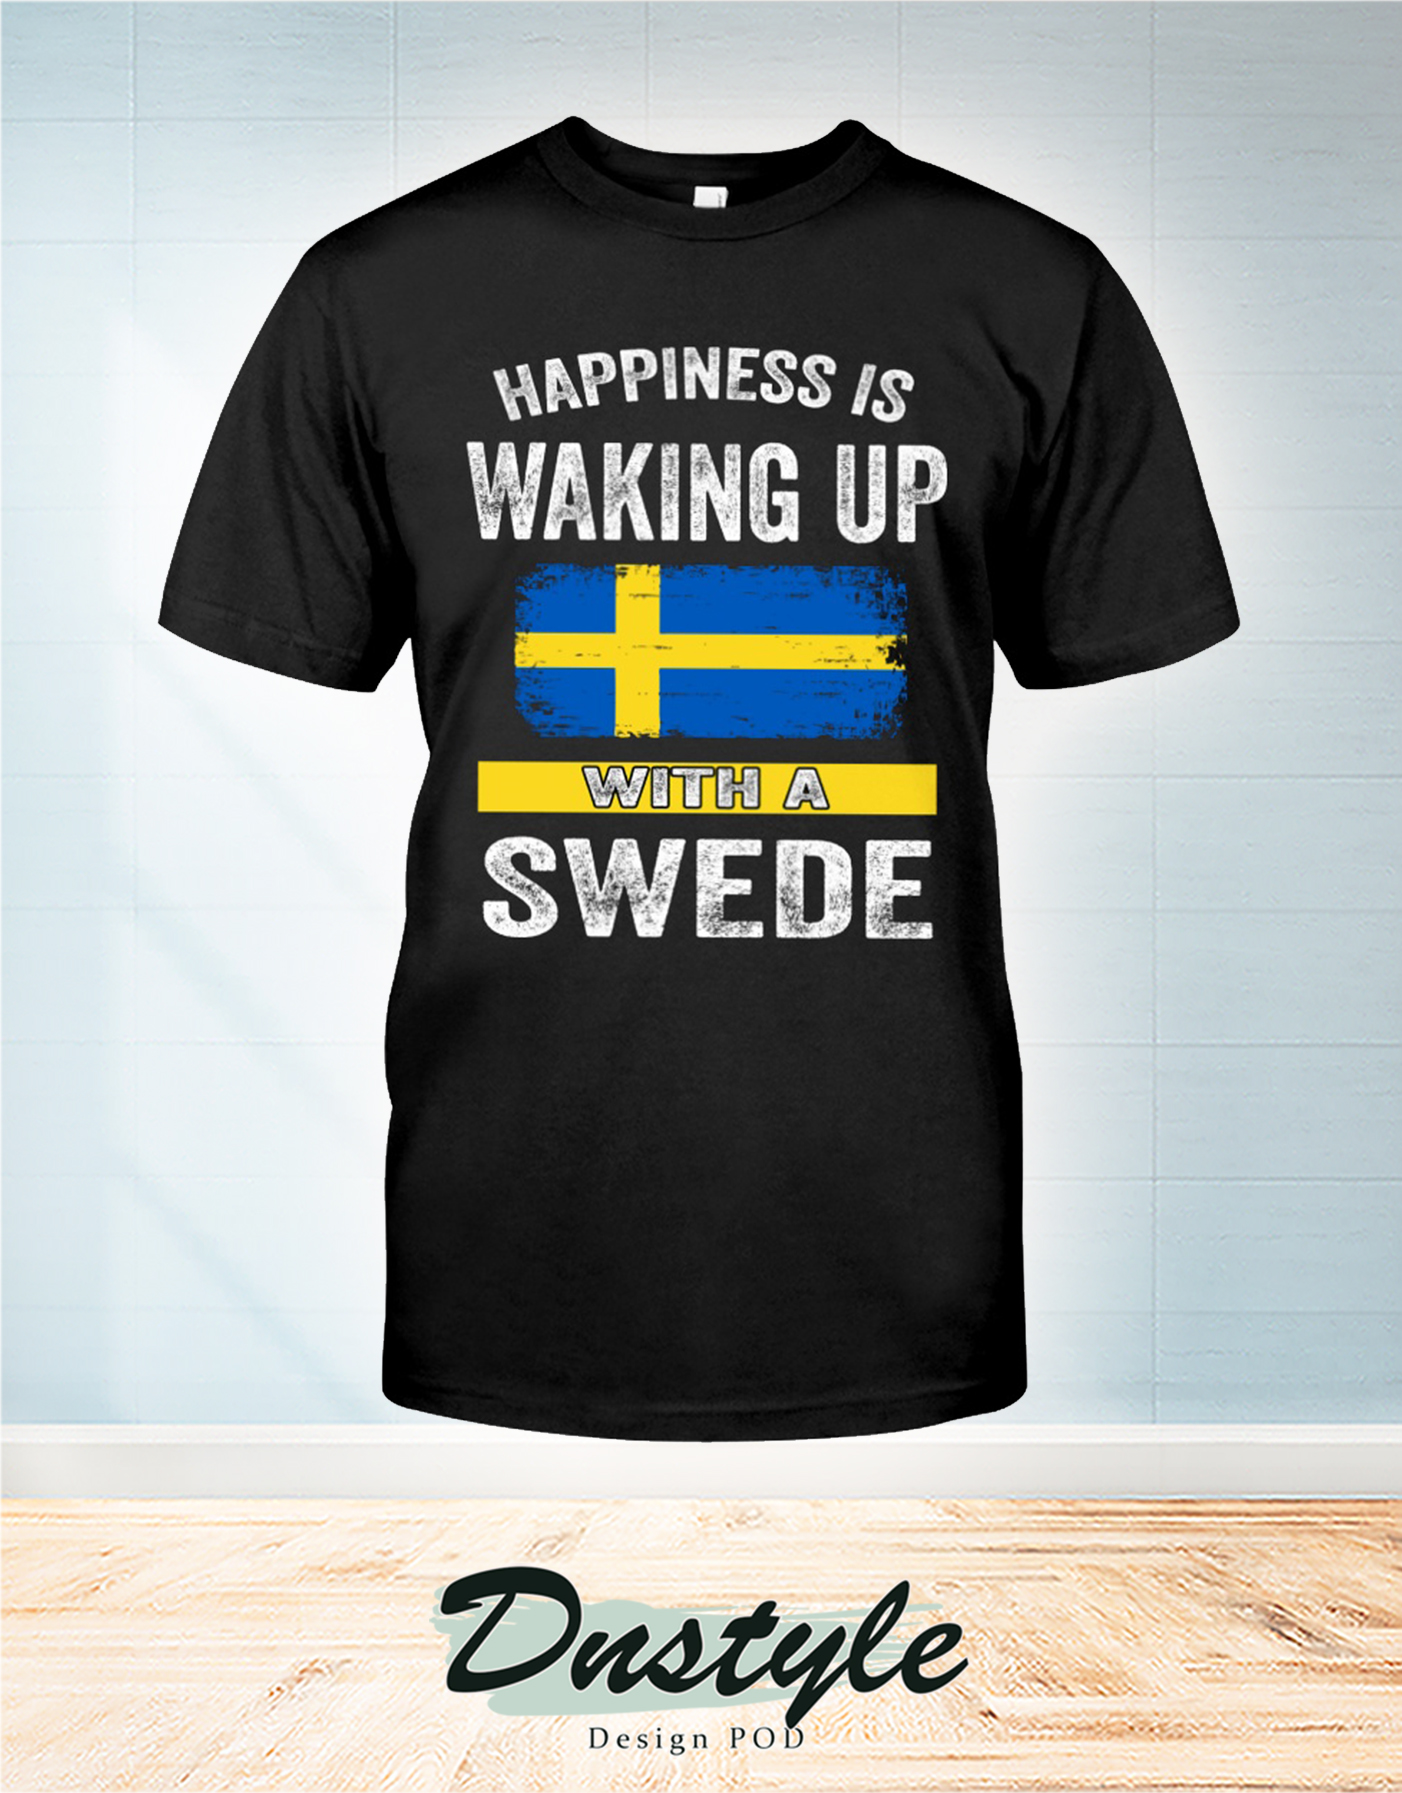 Happiness is waking up with a swede t-shirt